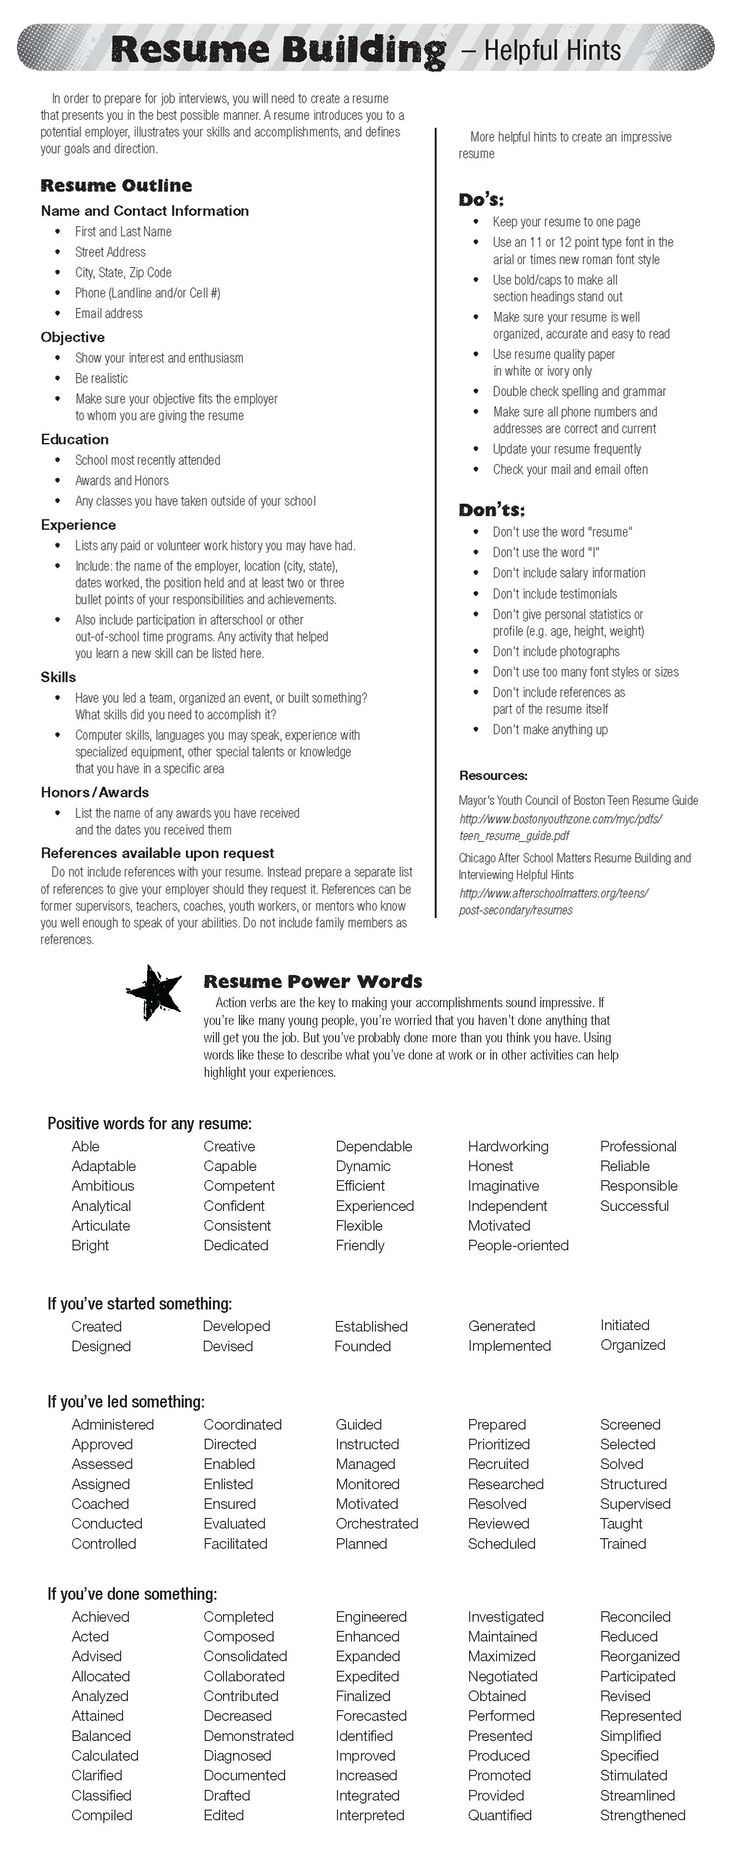 Opposenewapstandardsus  Stunning  Ideas About Resume On Pinterest  Cv Format Resume Cv And  With Gorgeous  Ideas About Resume On Pinterest  Cv Format Resume Cv And Resume Templates With Appealing Pharmacist Resume Sample Also Create Your Resume In Addition Resume For Nursing Student And School Secretary Resume As Well As Resume Headlines Additionally Freelance Photographer Resume From Pinterestcom With Opposenewapstandardsus  Gorgeous  Ideas About Resume On Pinterest  Cv Format Resume Cv And  With Appealing  Ideas About Resume On Pinterest  Cv Format Resume Cv And Resume Templates And Stunning Pharmacist Resume Sample Also Create Your Resume In Addition Resume For Nursing Student From Pinterestcom